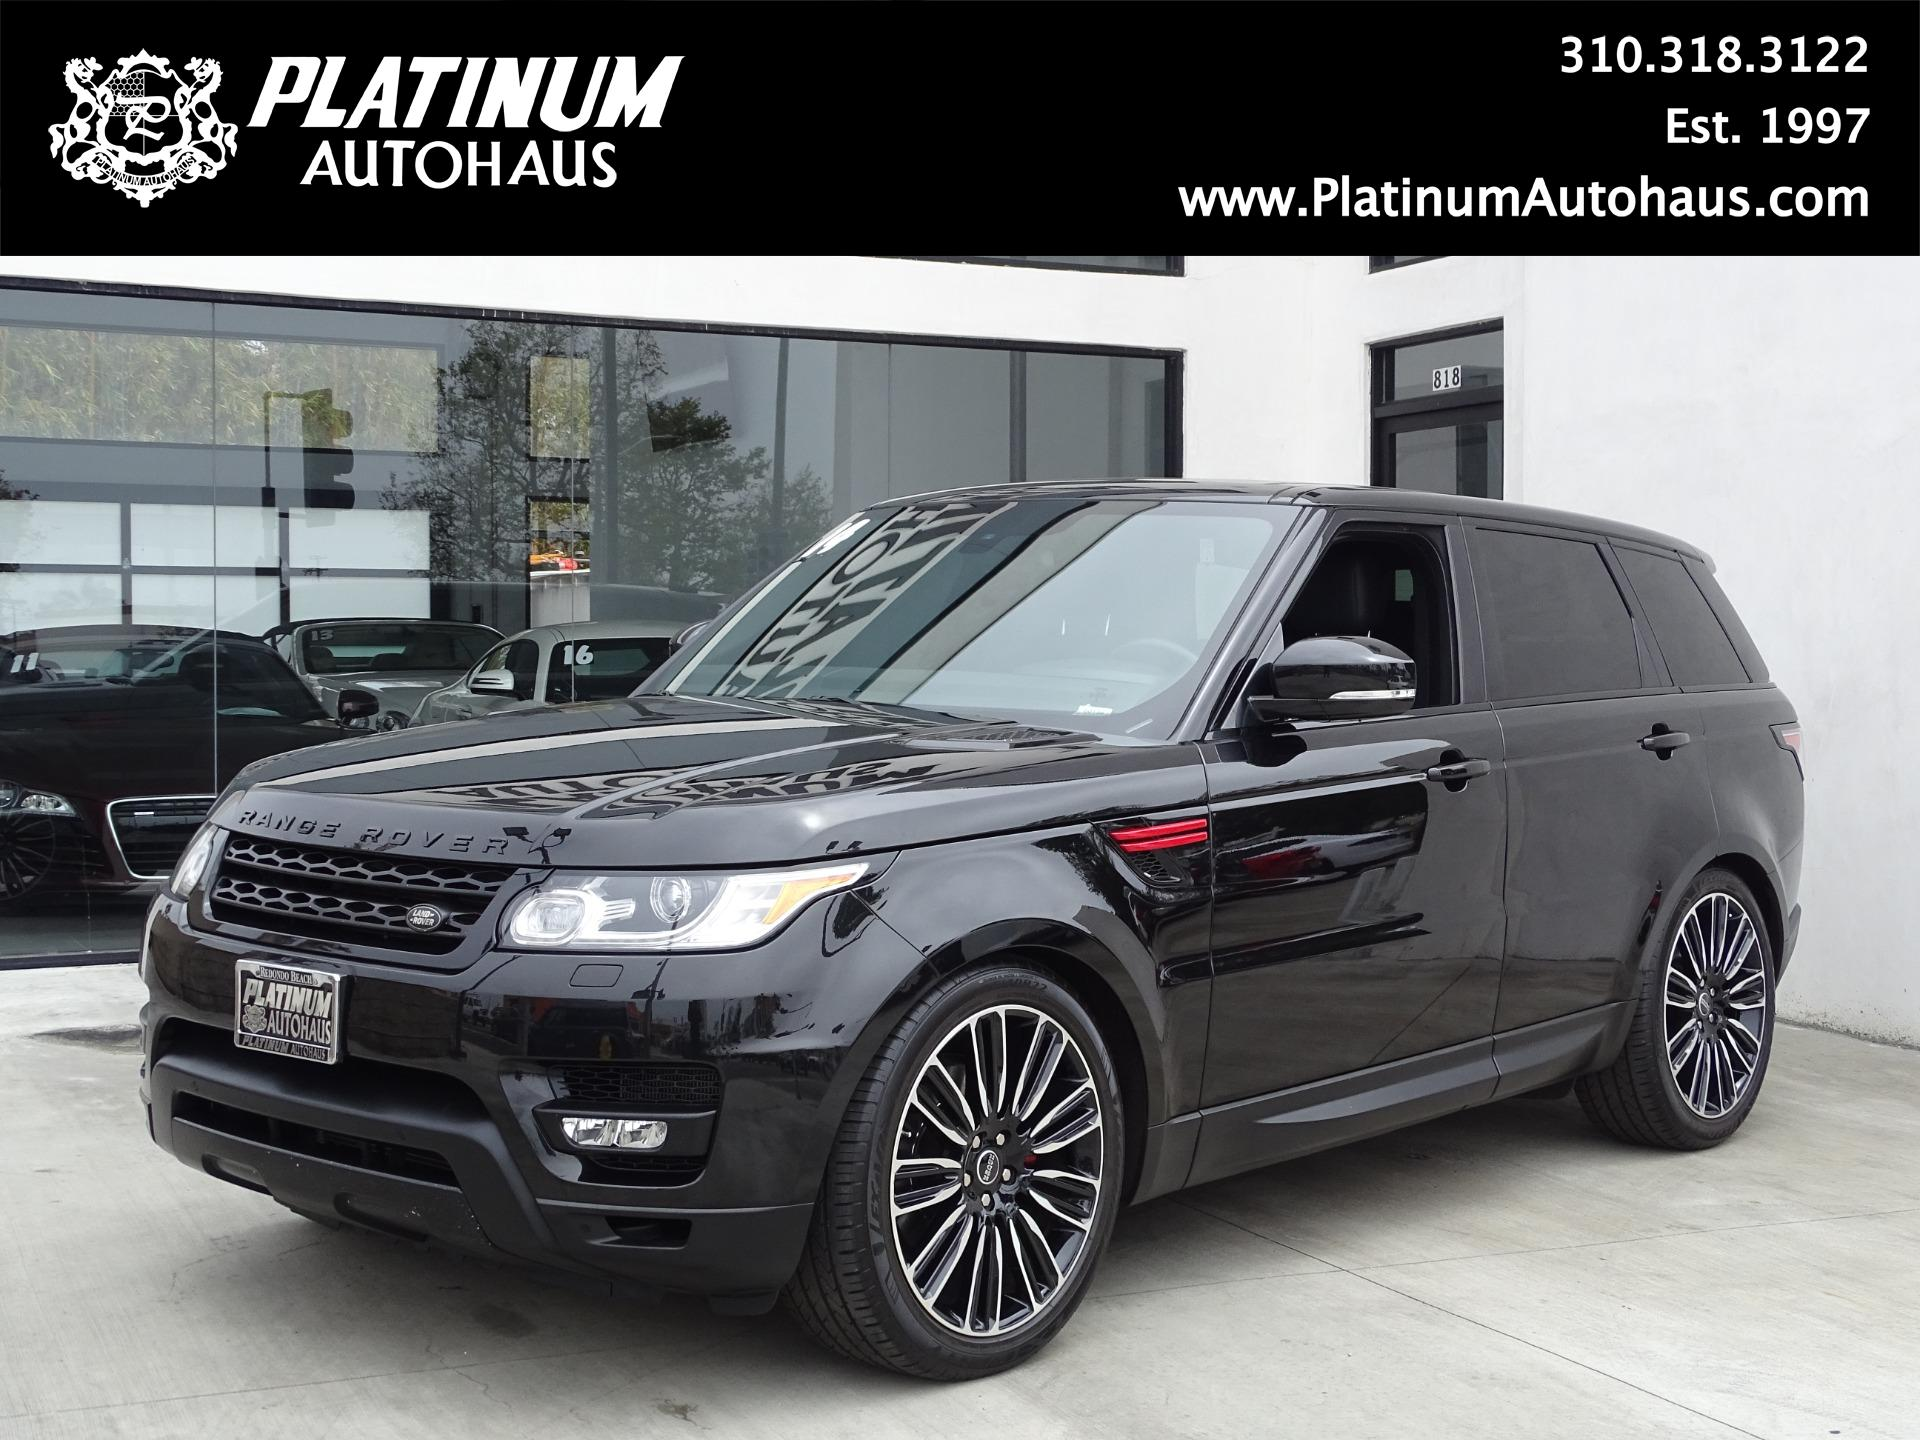 2014 Land Rover Range Rover Sport Hse Stock 6093 For